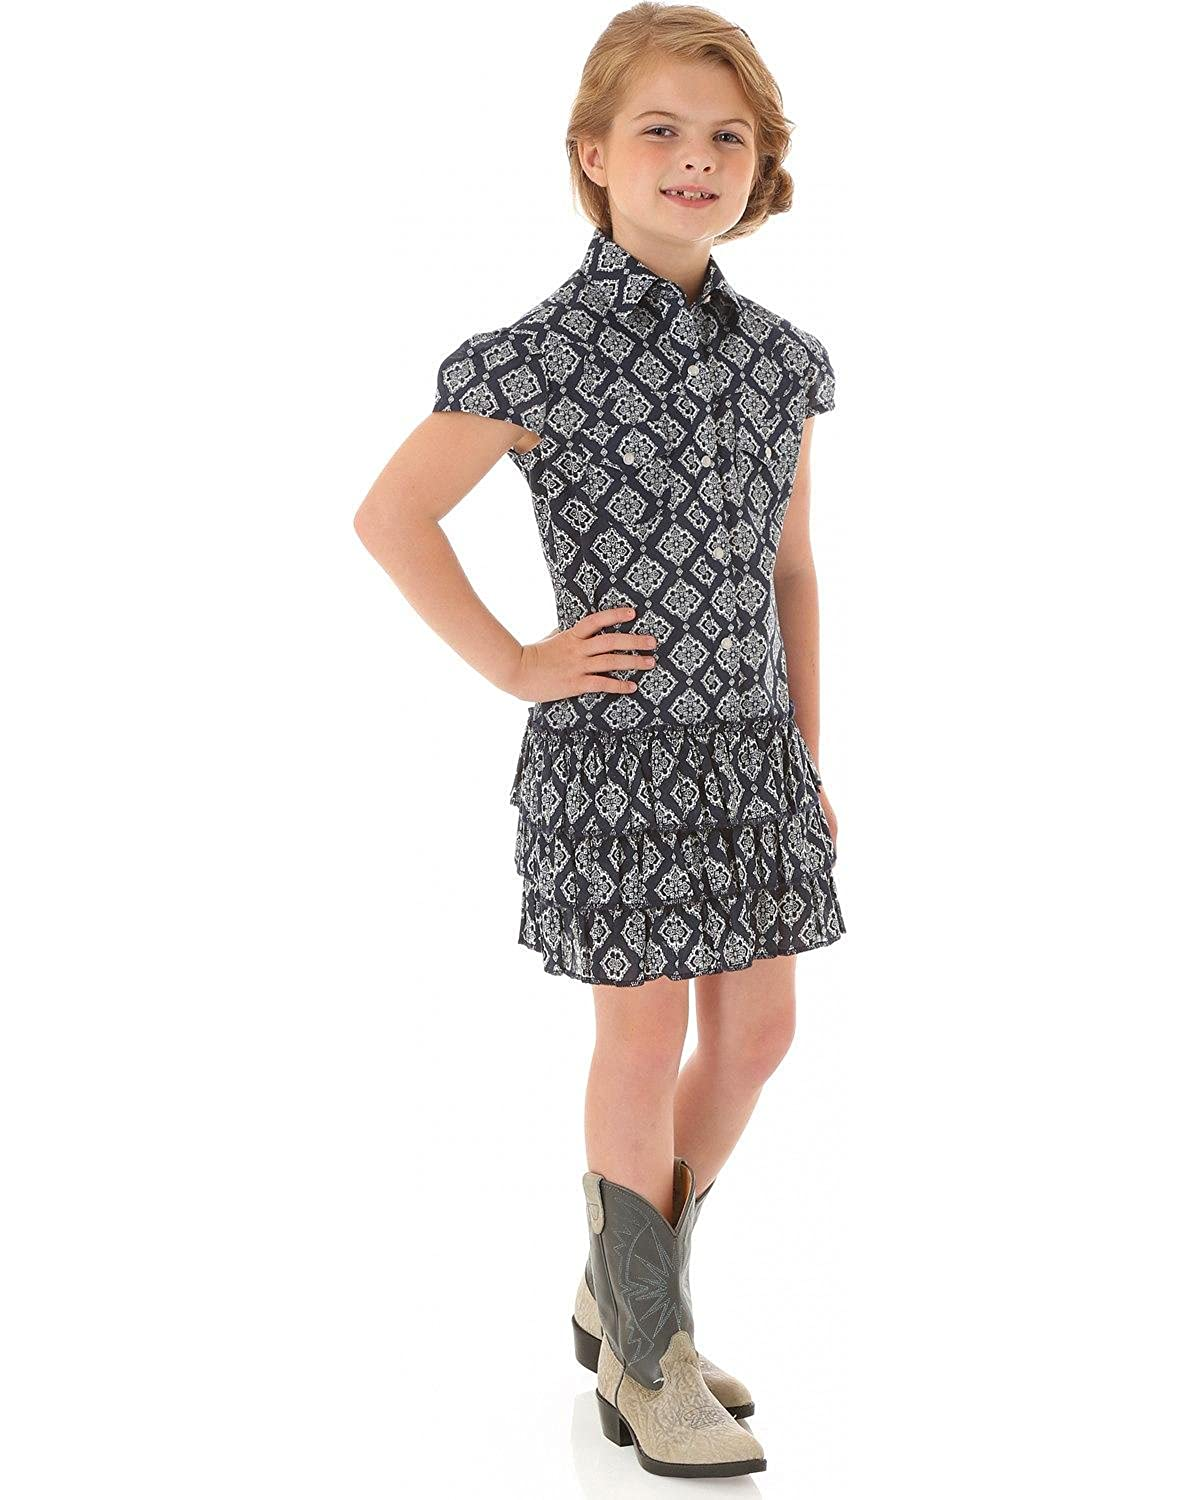 3d9477841d50 Amazon.com: Wrangler Girls' Bandana Print Ruffled Shirt Dress Blue  XX-Large: Clothing